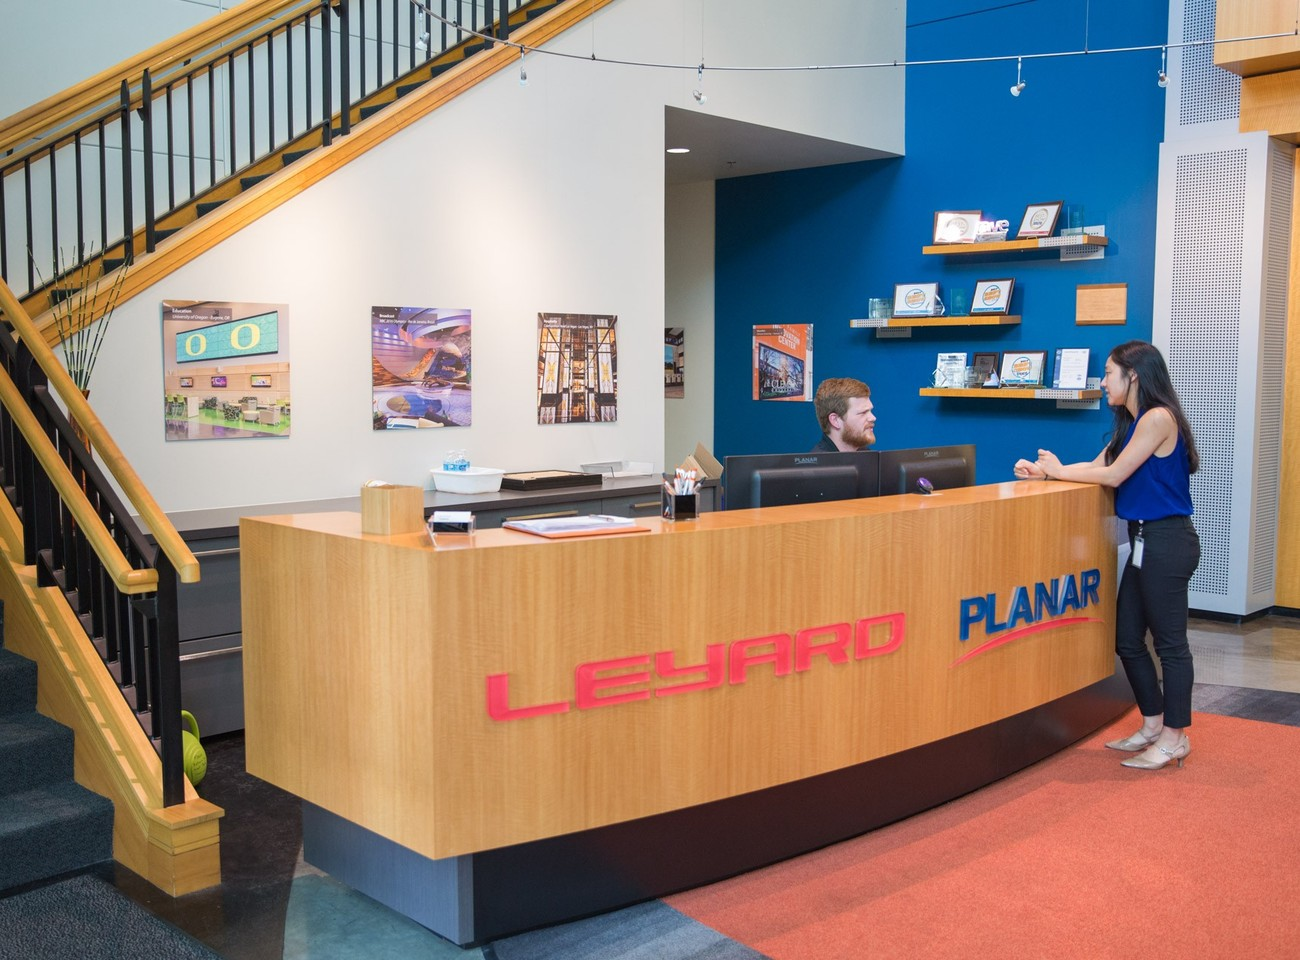 Leyard and Planar Careers